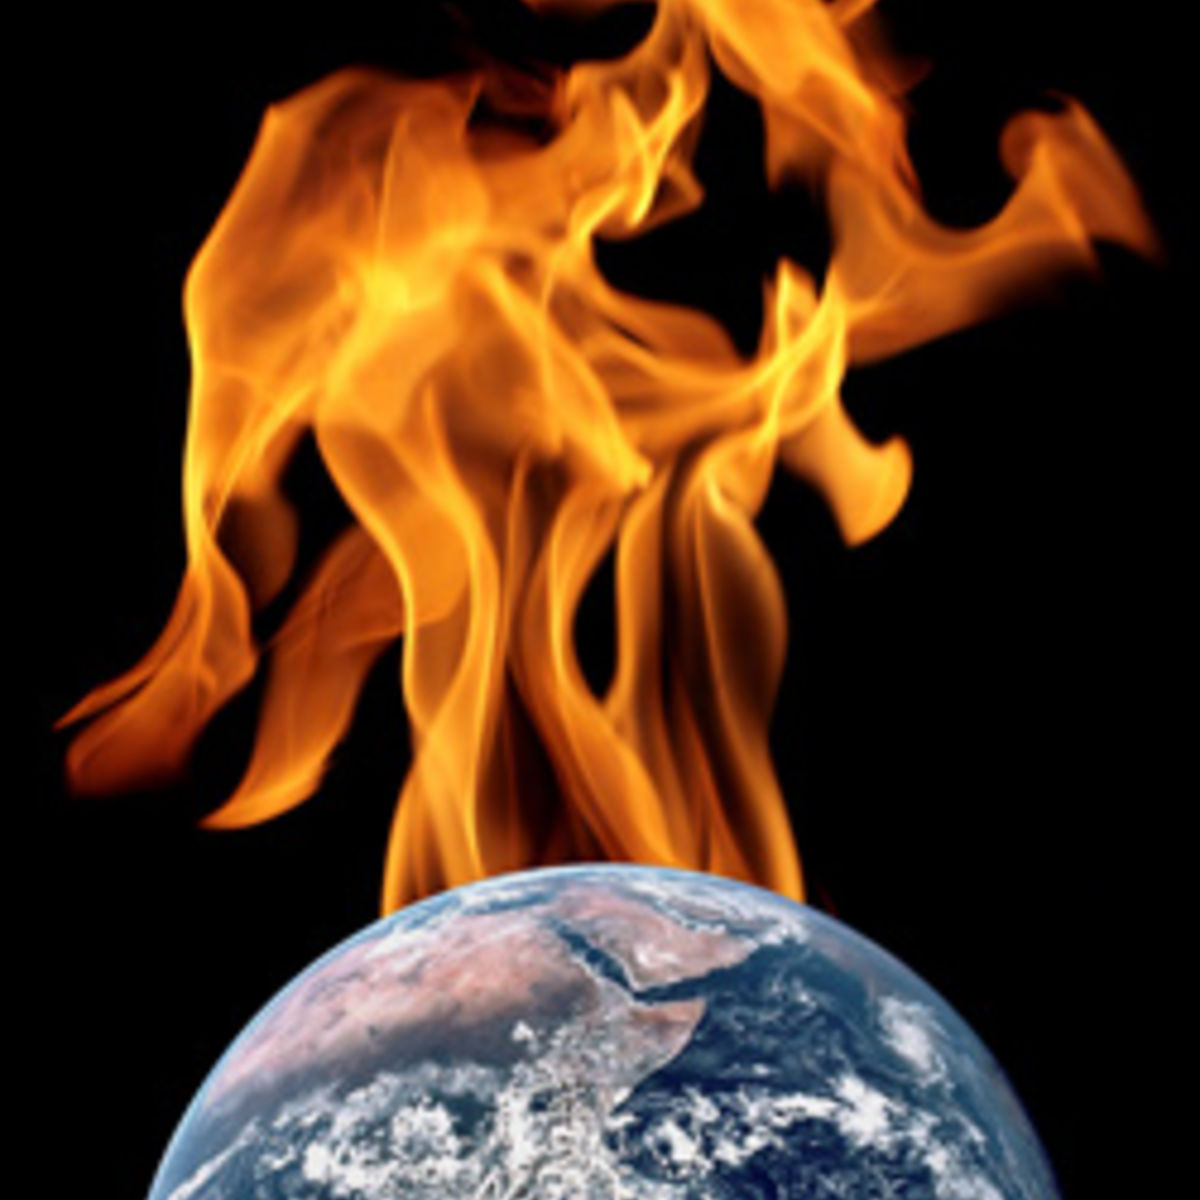 earthonfire_250_2.jpg